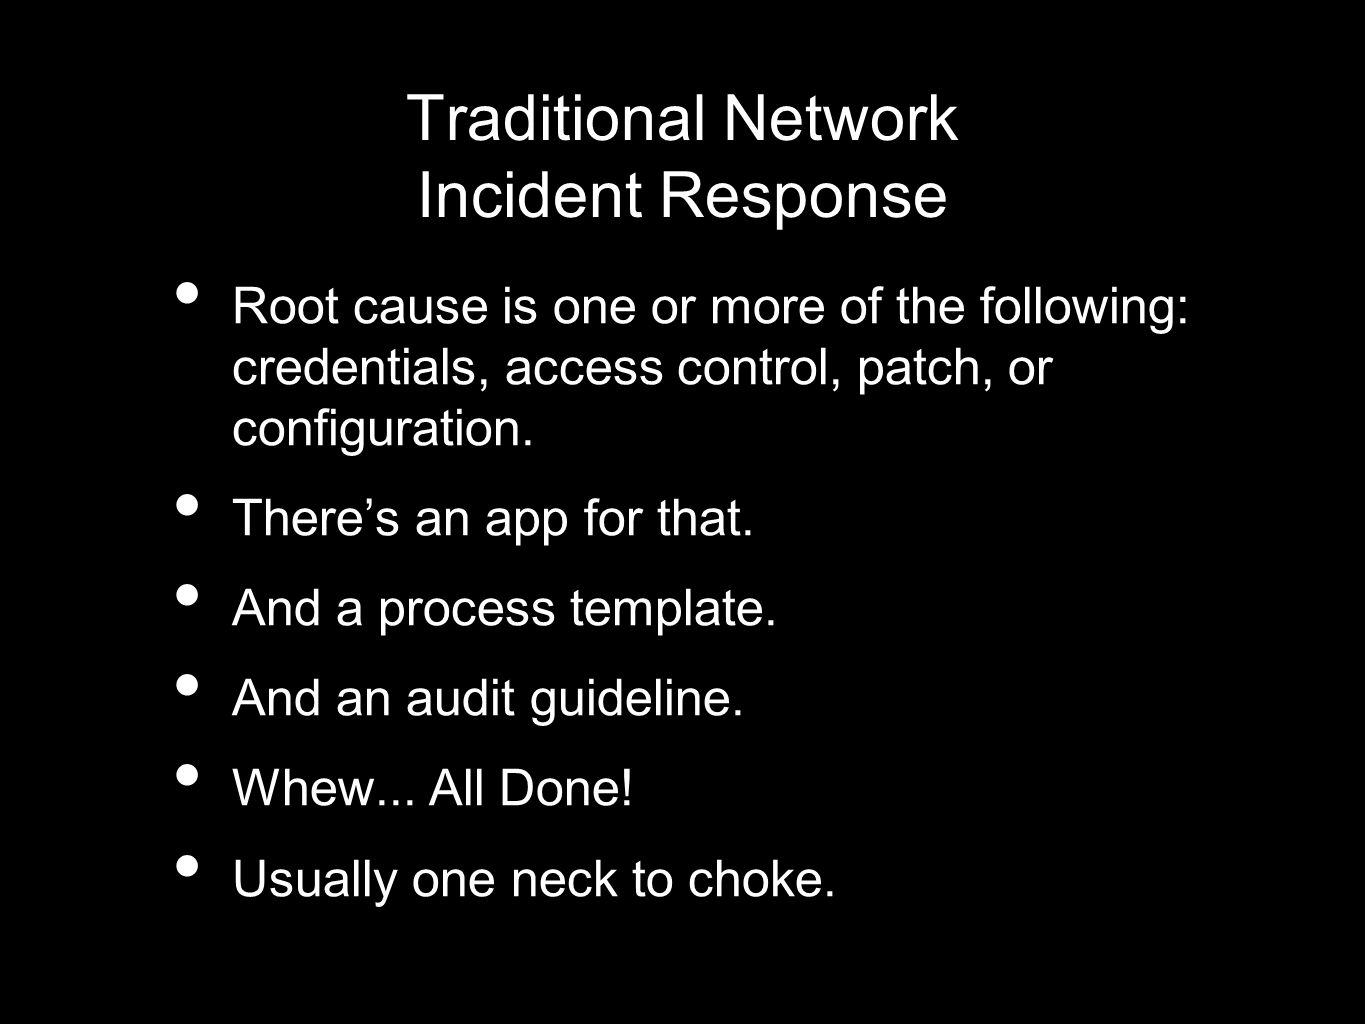 Traditional Network Incident Response Root cause is one or more of the following: credentials, access control, patch, or configuration.